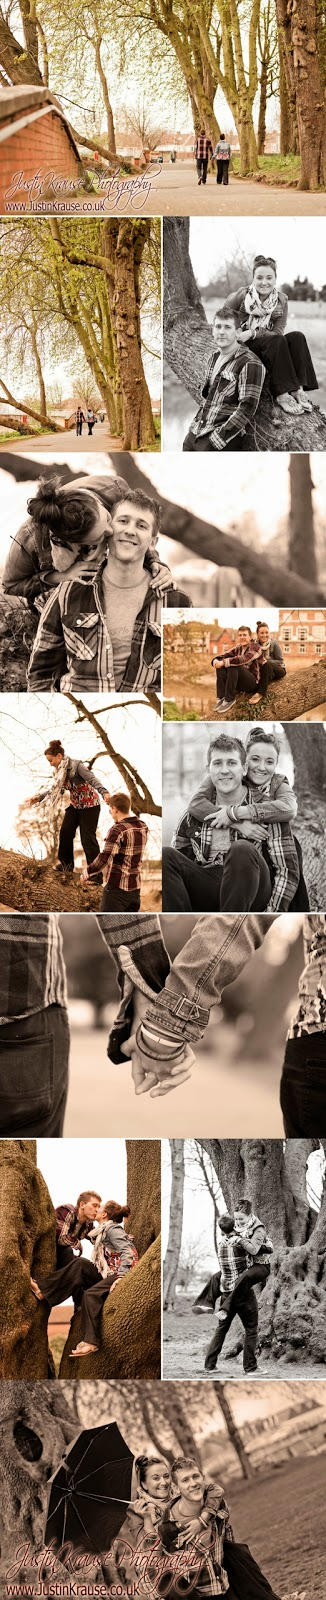 verity and gary pre wedding engagement shoot Bridgwater somerset photography by justin and emily krause